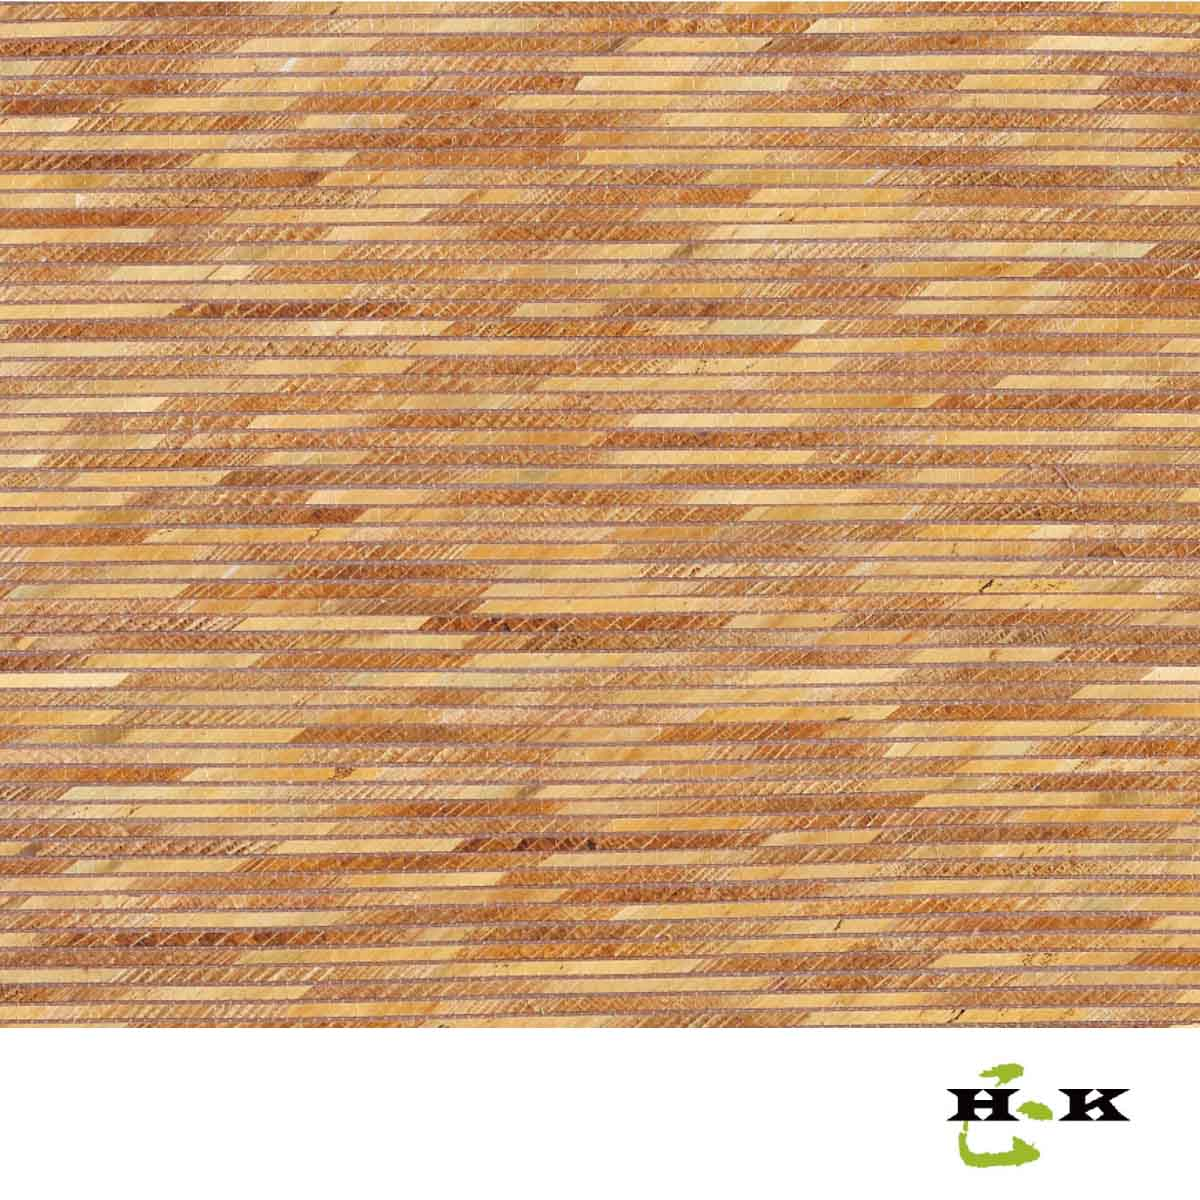 Natural banana stem material contemporary wallpaper